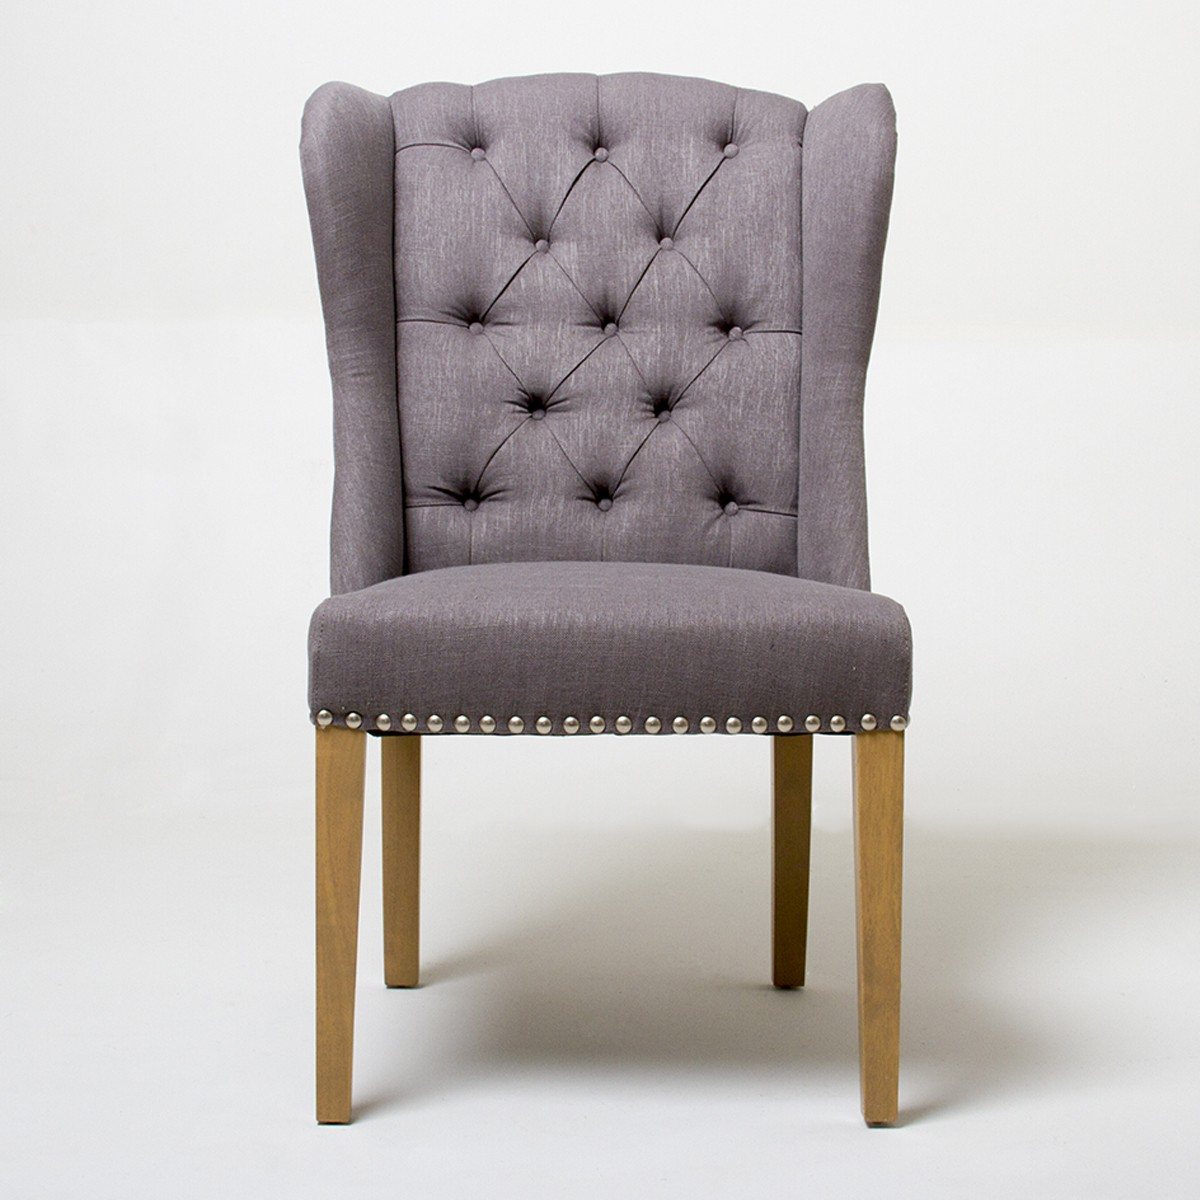 Image of: Wingback Dining Chair Slipcover